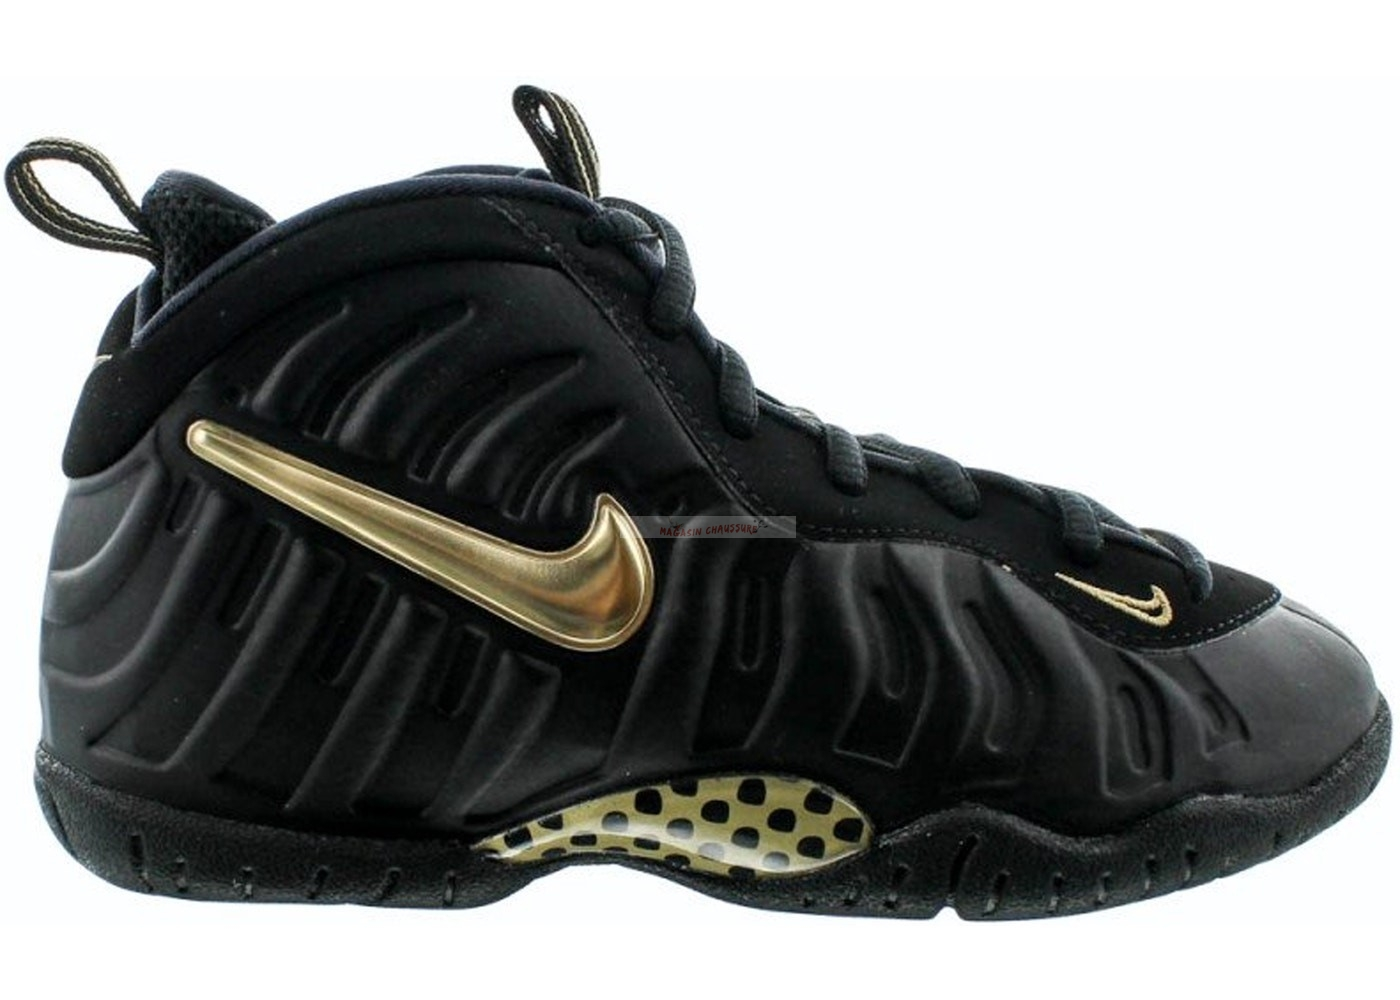 Nike Air Foamposite Pro (Ps) Noir Or (843755-010) Chaussure de Basket